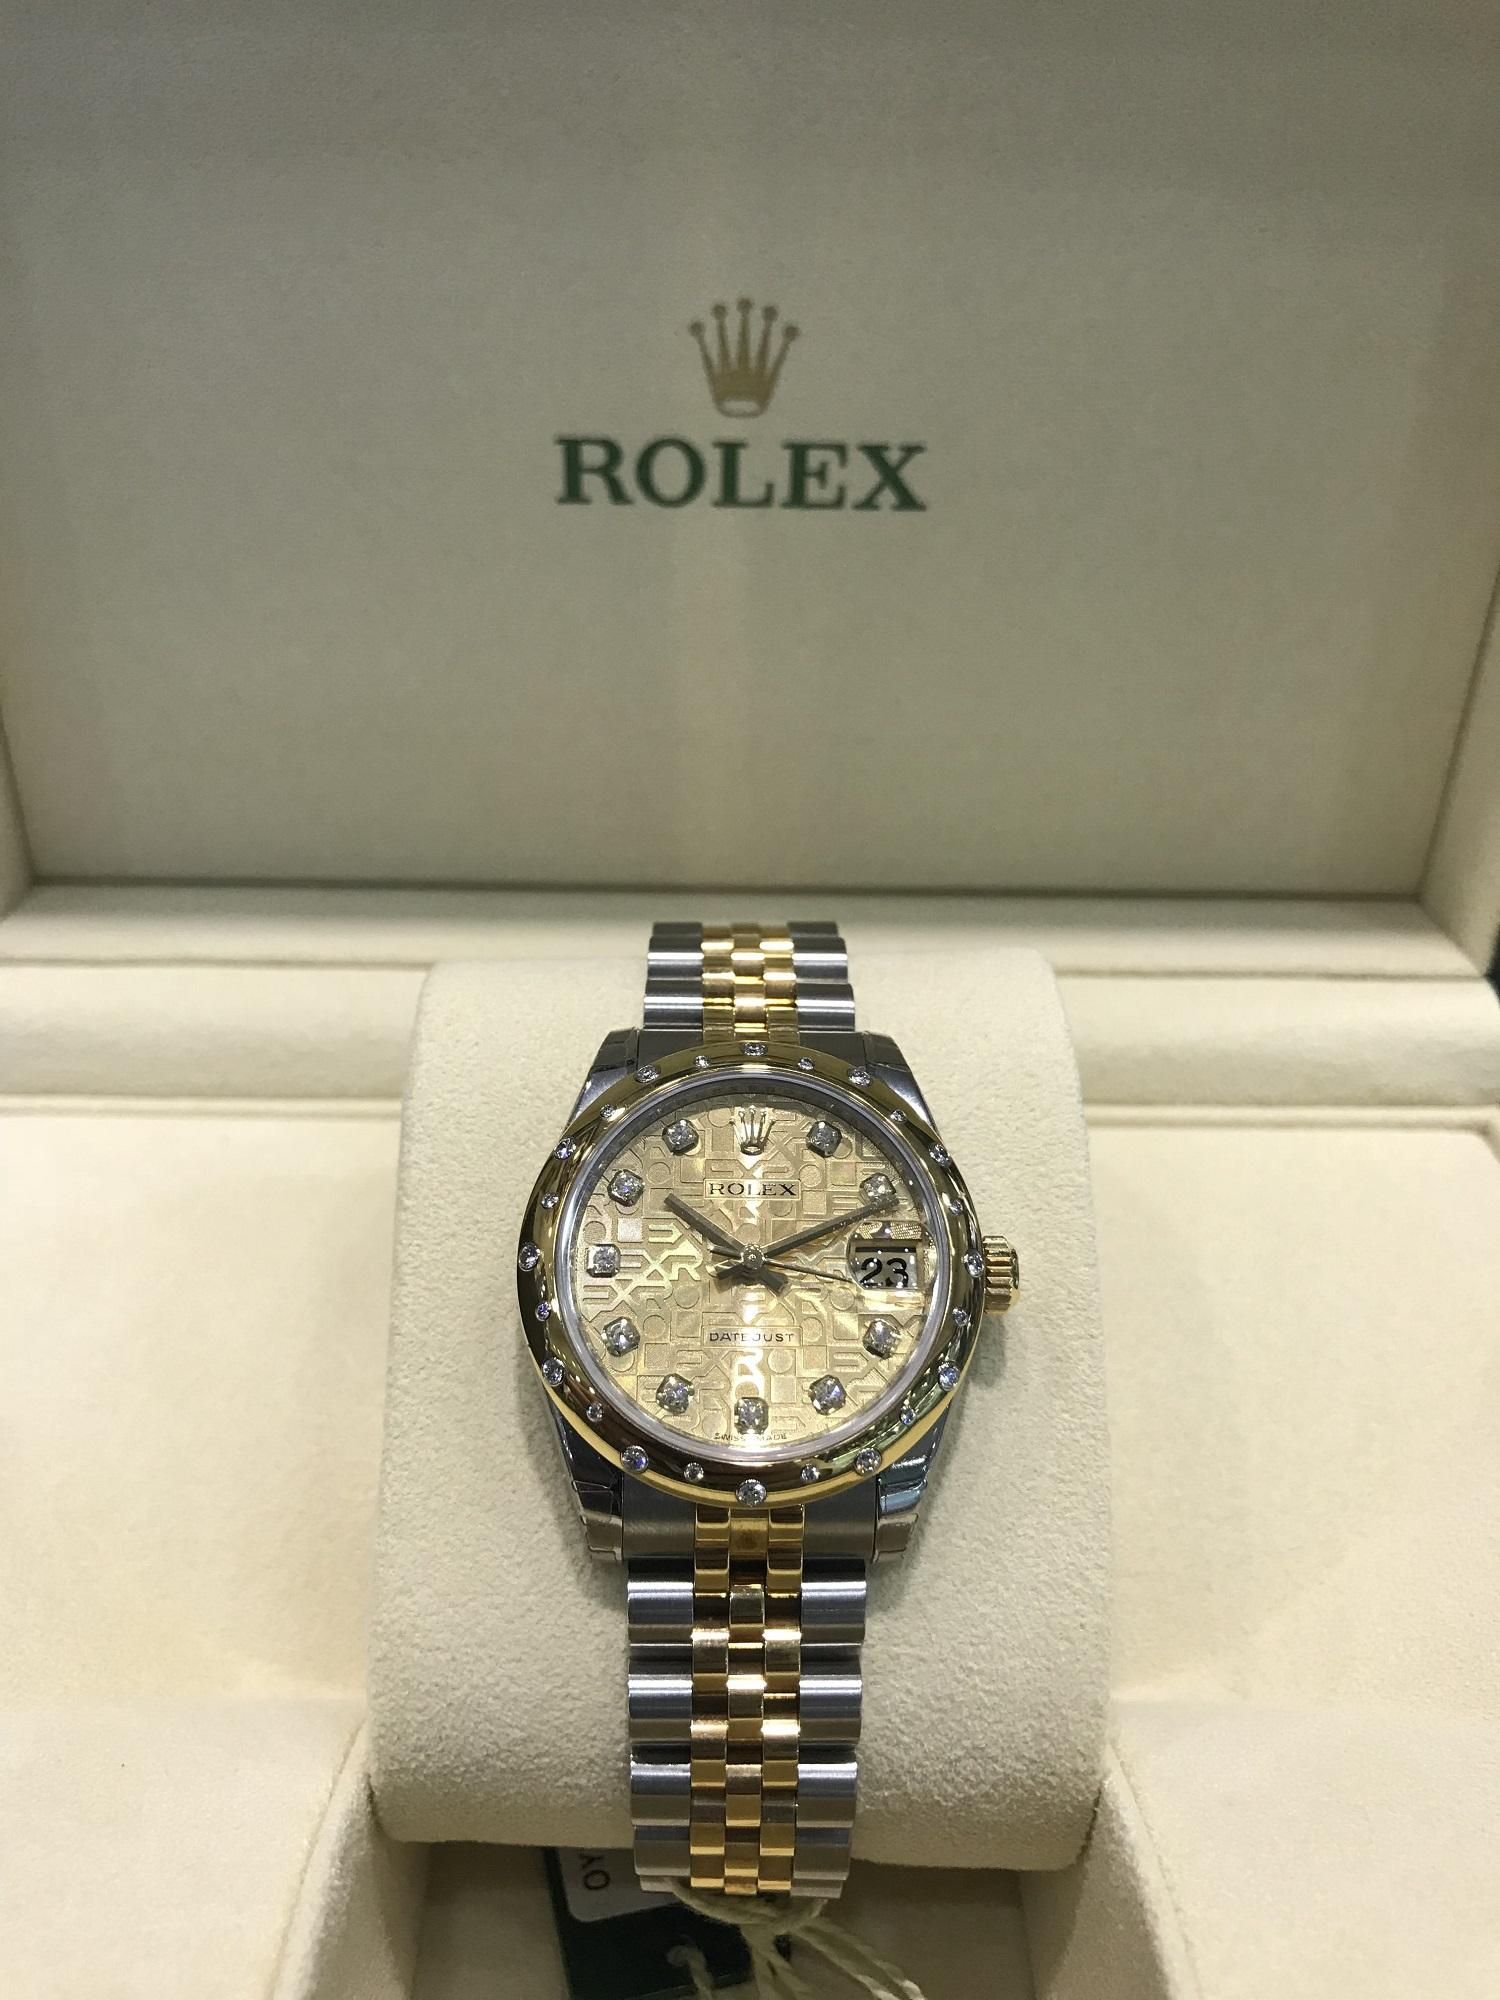 Rolexs Watches Rolex 178343 Jubilee Champagne Diamond Oyster Datejust 31mm Oystersteel And Yellow Gold Ladies Watch With Diamond Bezel And Diamond Indexes